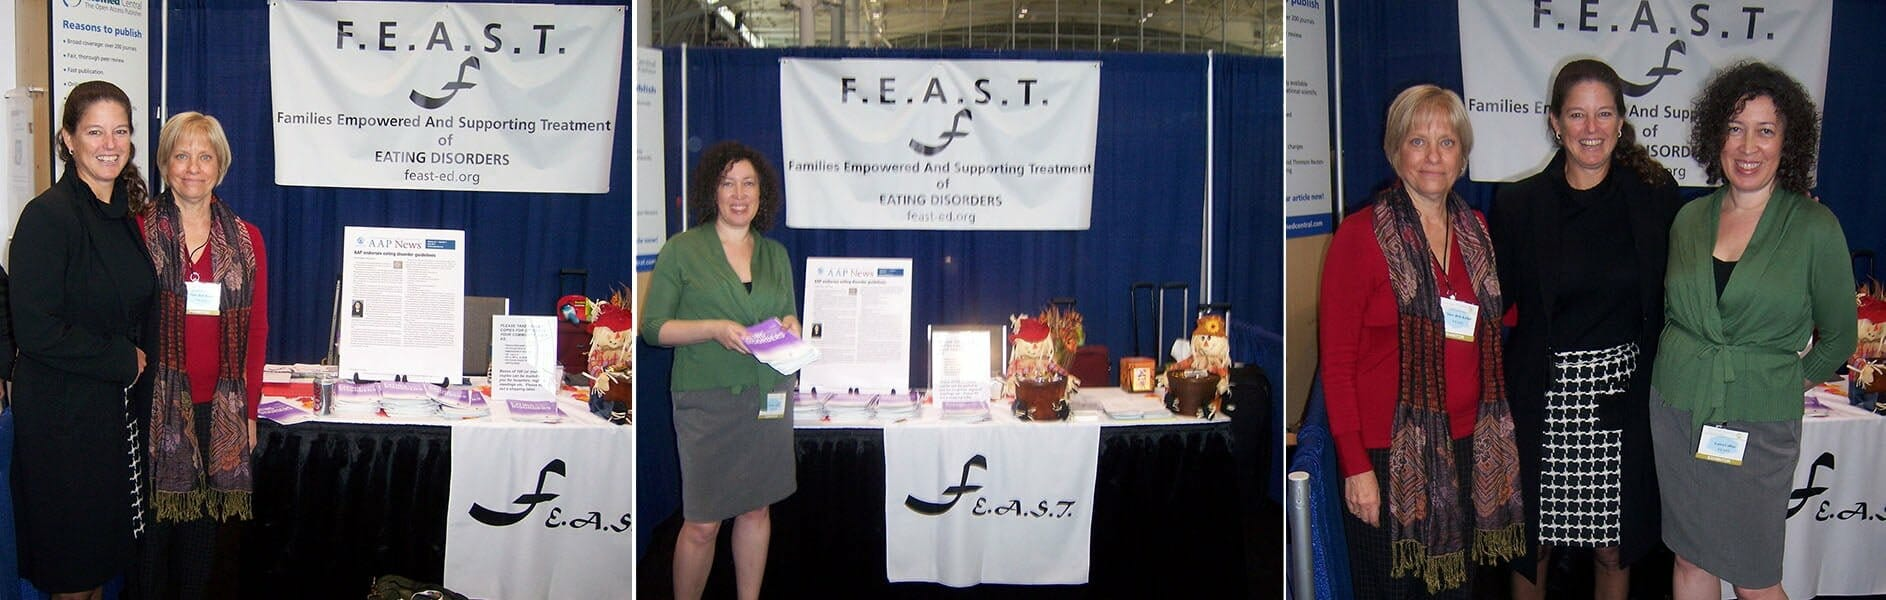 FEAST History NEDA Exhibition 2008 - 2010 Eating Disorder Parent Support